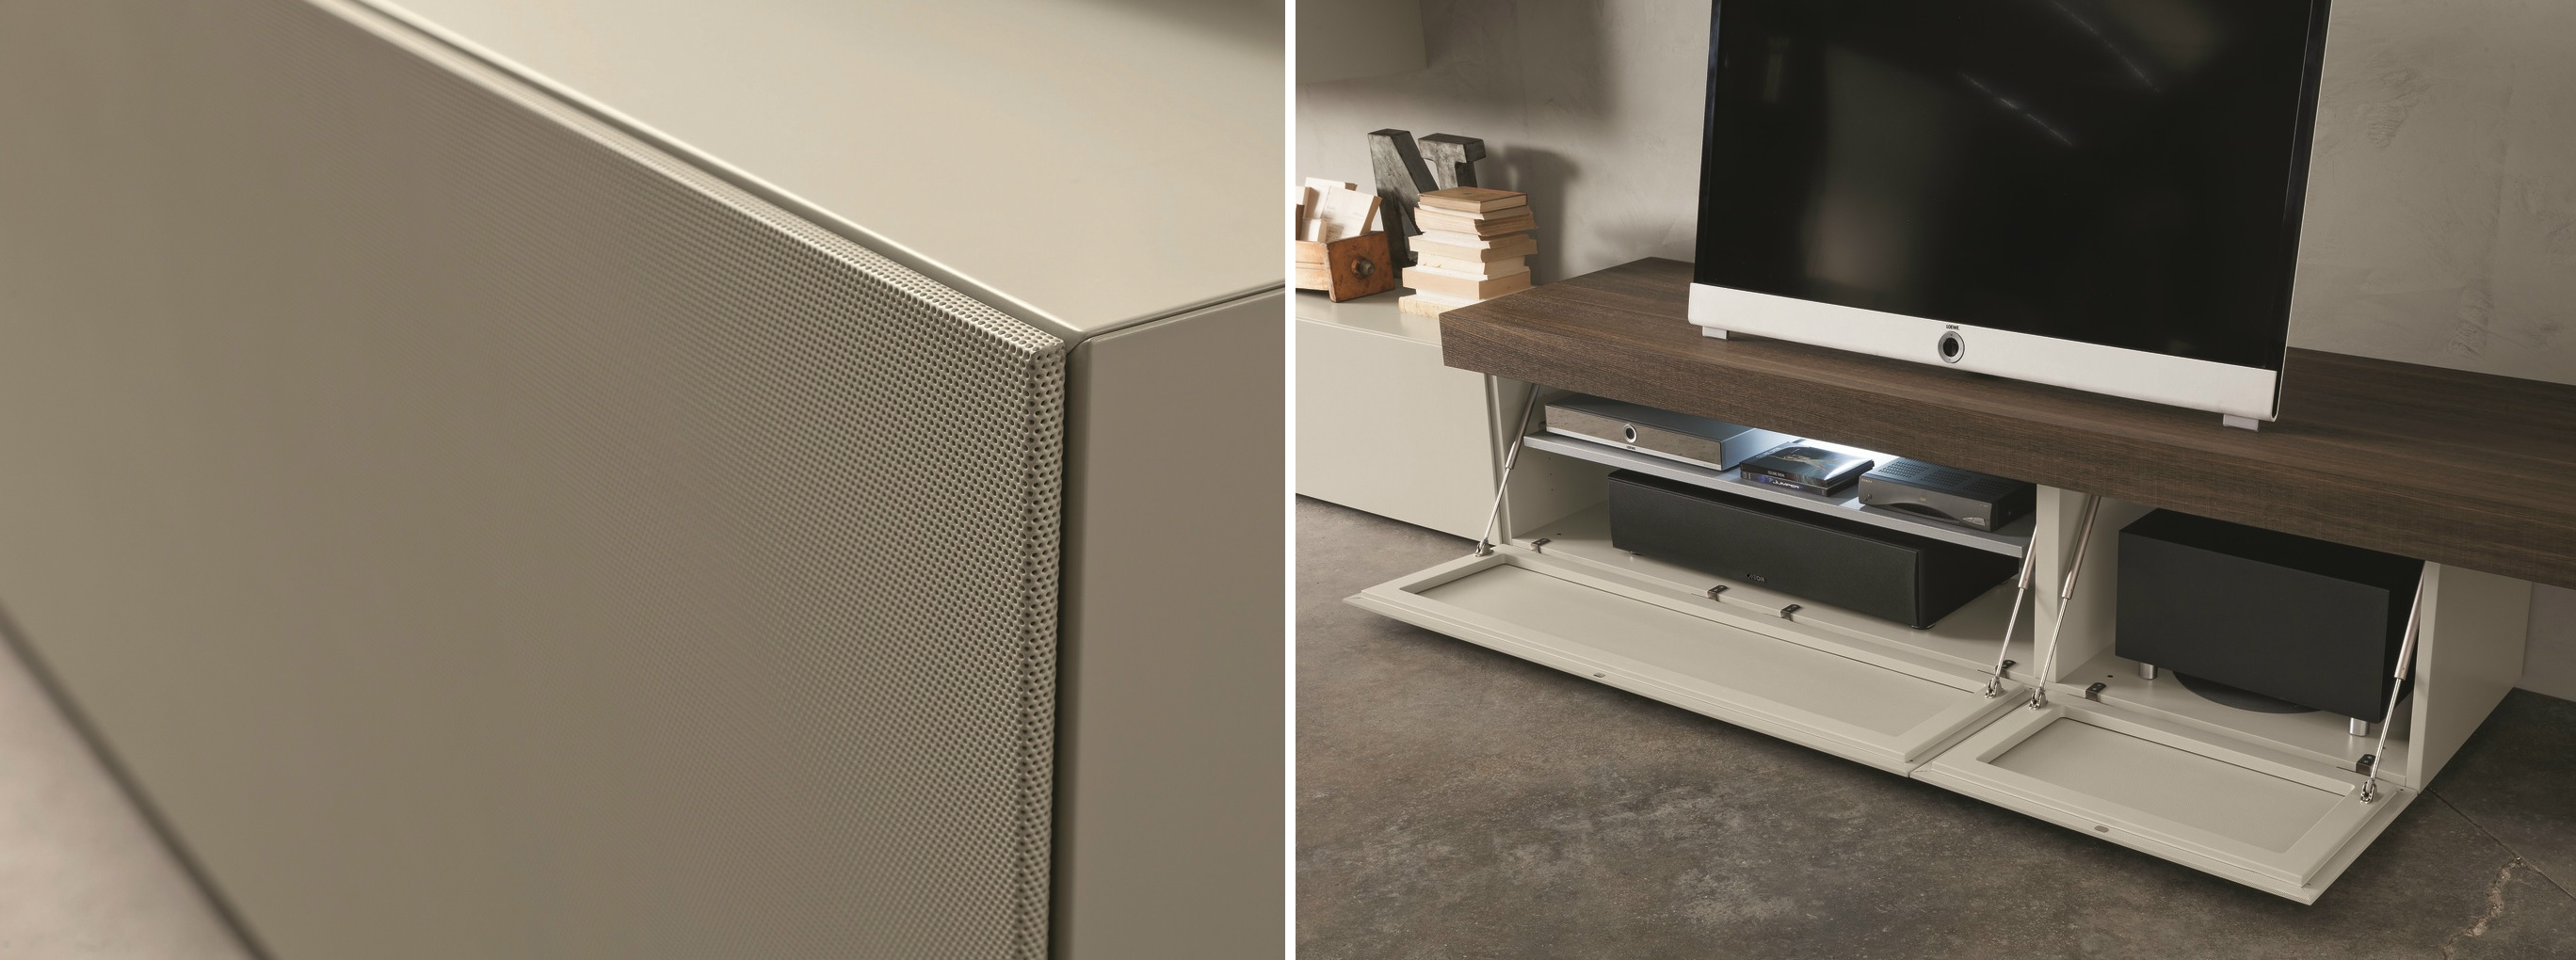 modulart-lacquered-metal-cabinet